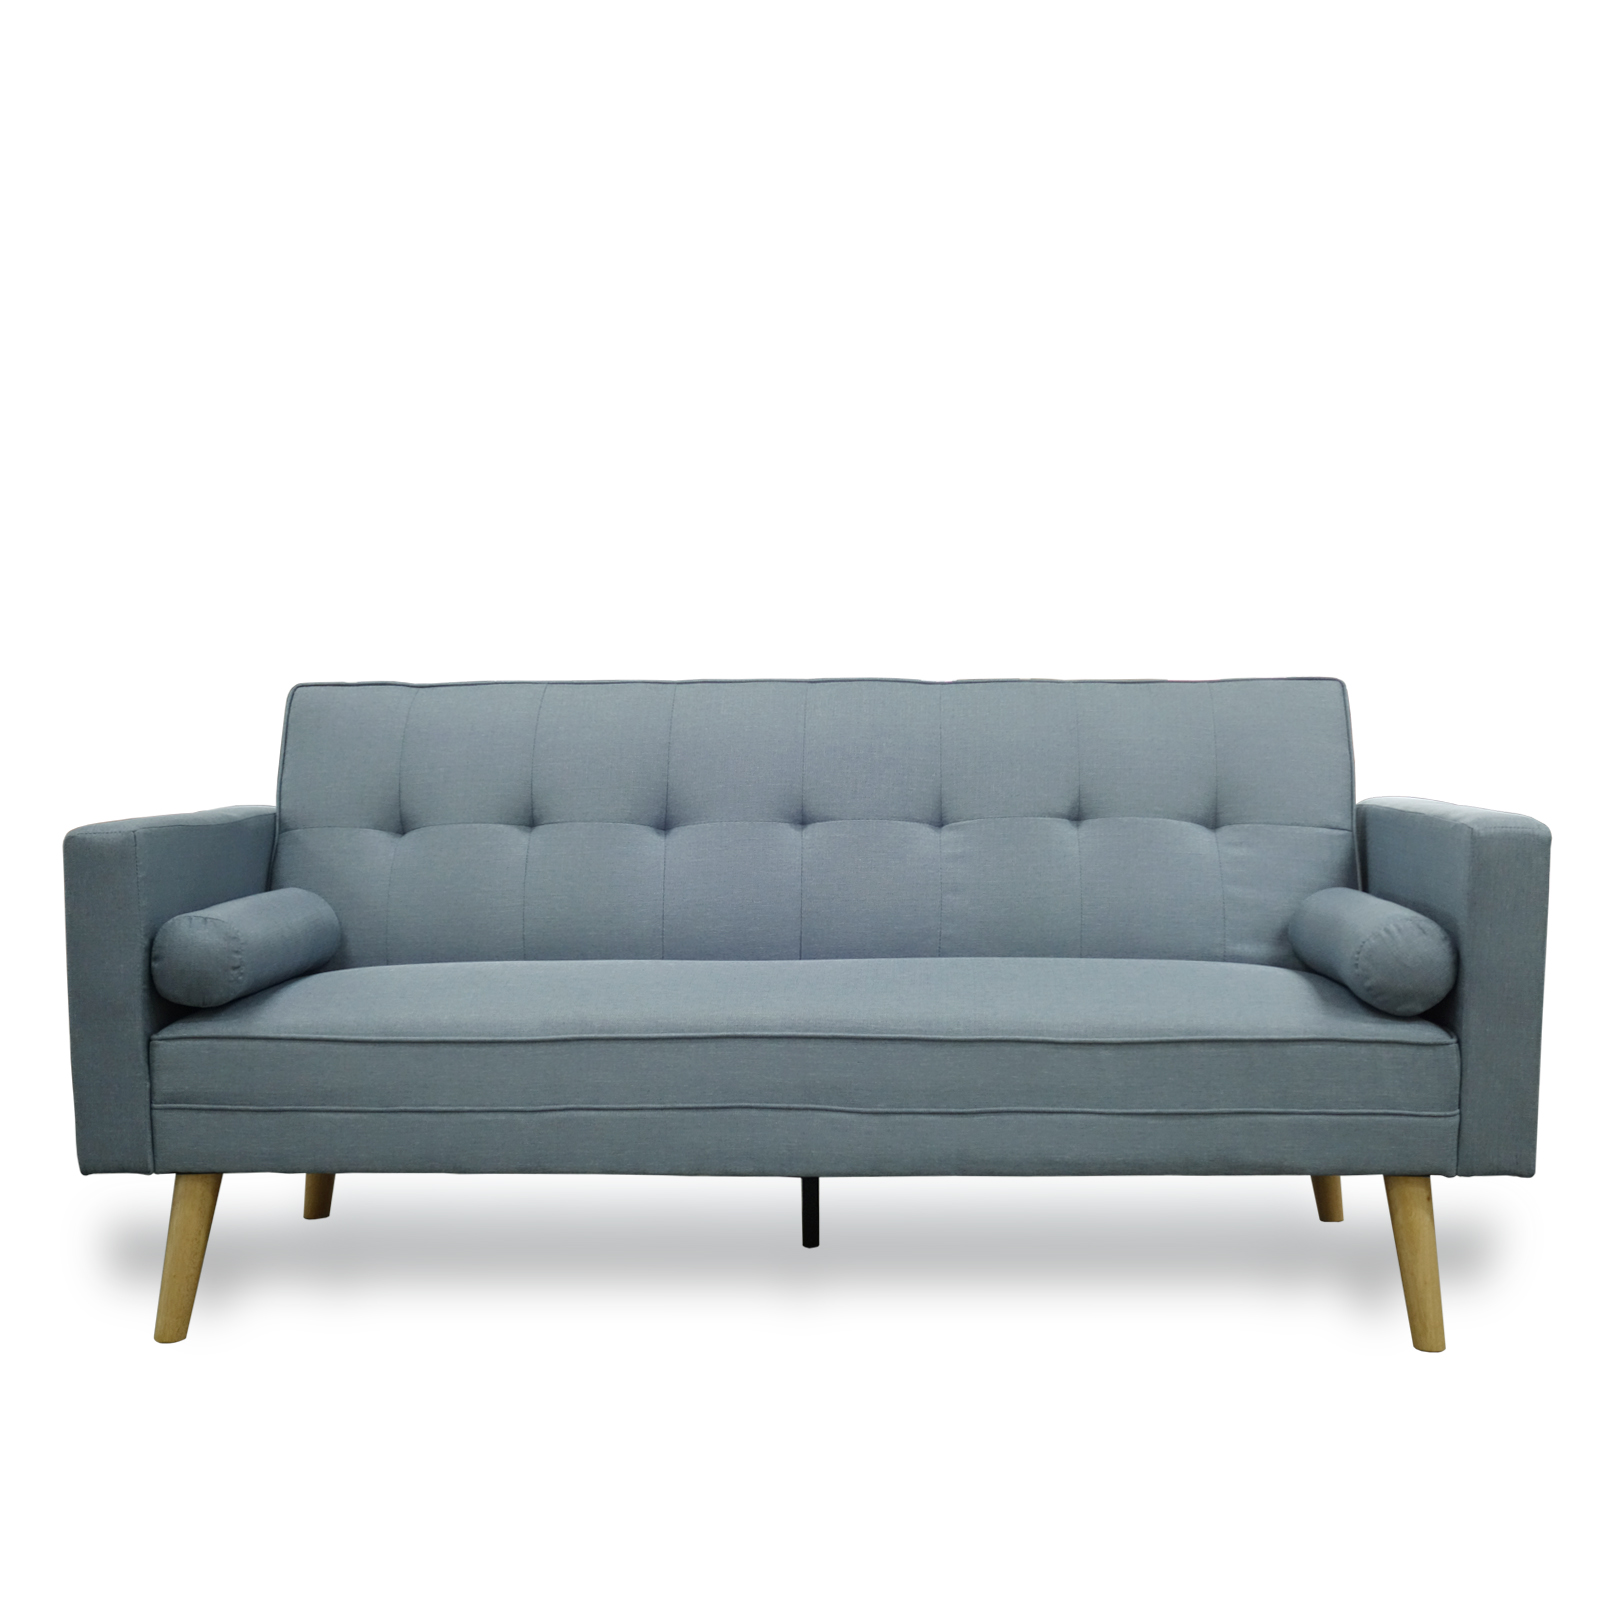 Amy Brand New Blue Or Grey Fabric Click Clack Sofa Bed